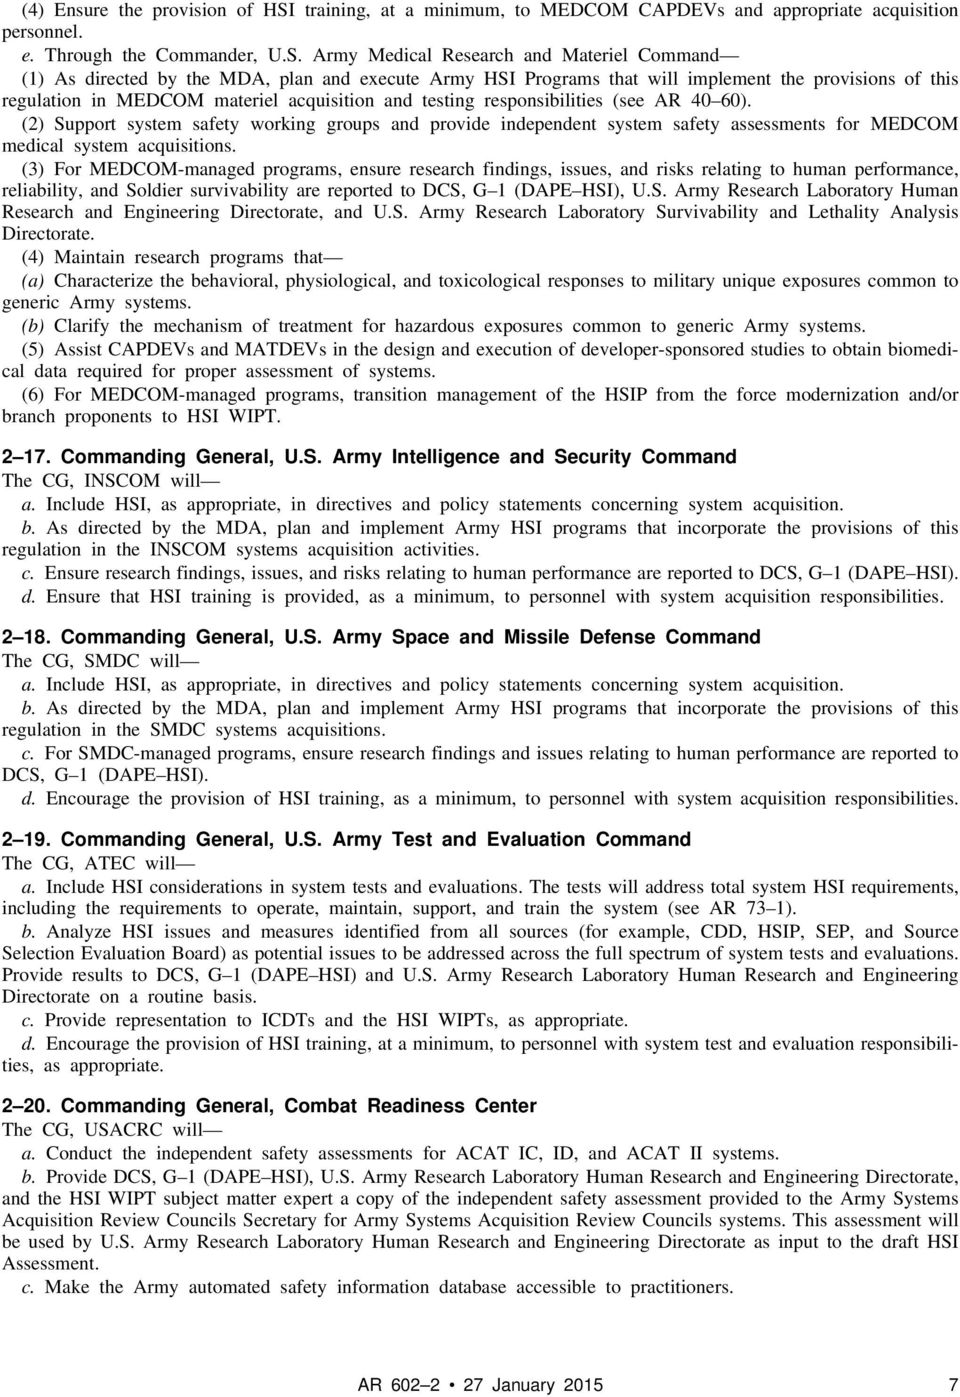 Army Medical Research and Materiel Command (1) As directed by the MDA, plan and execute Army HSI Programs that will implement the provisions of this regulation in MEDCOM materiel acquisition and